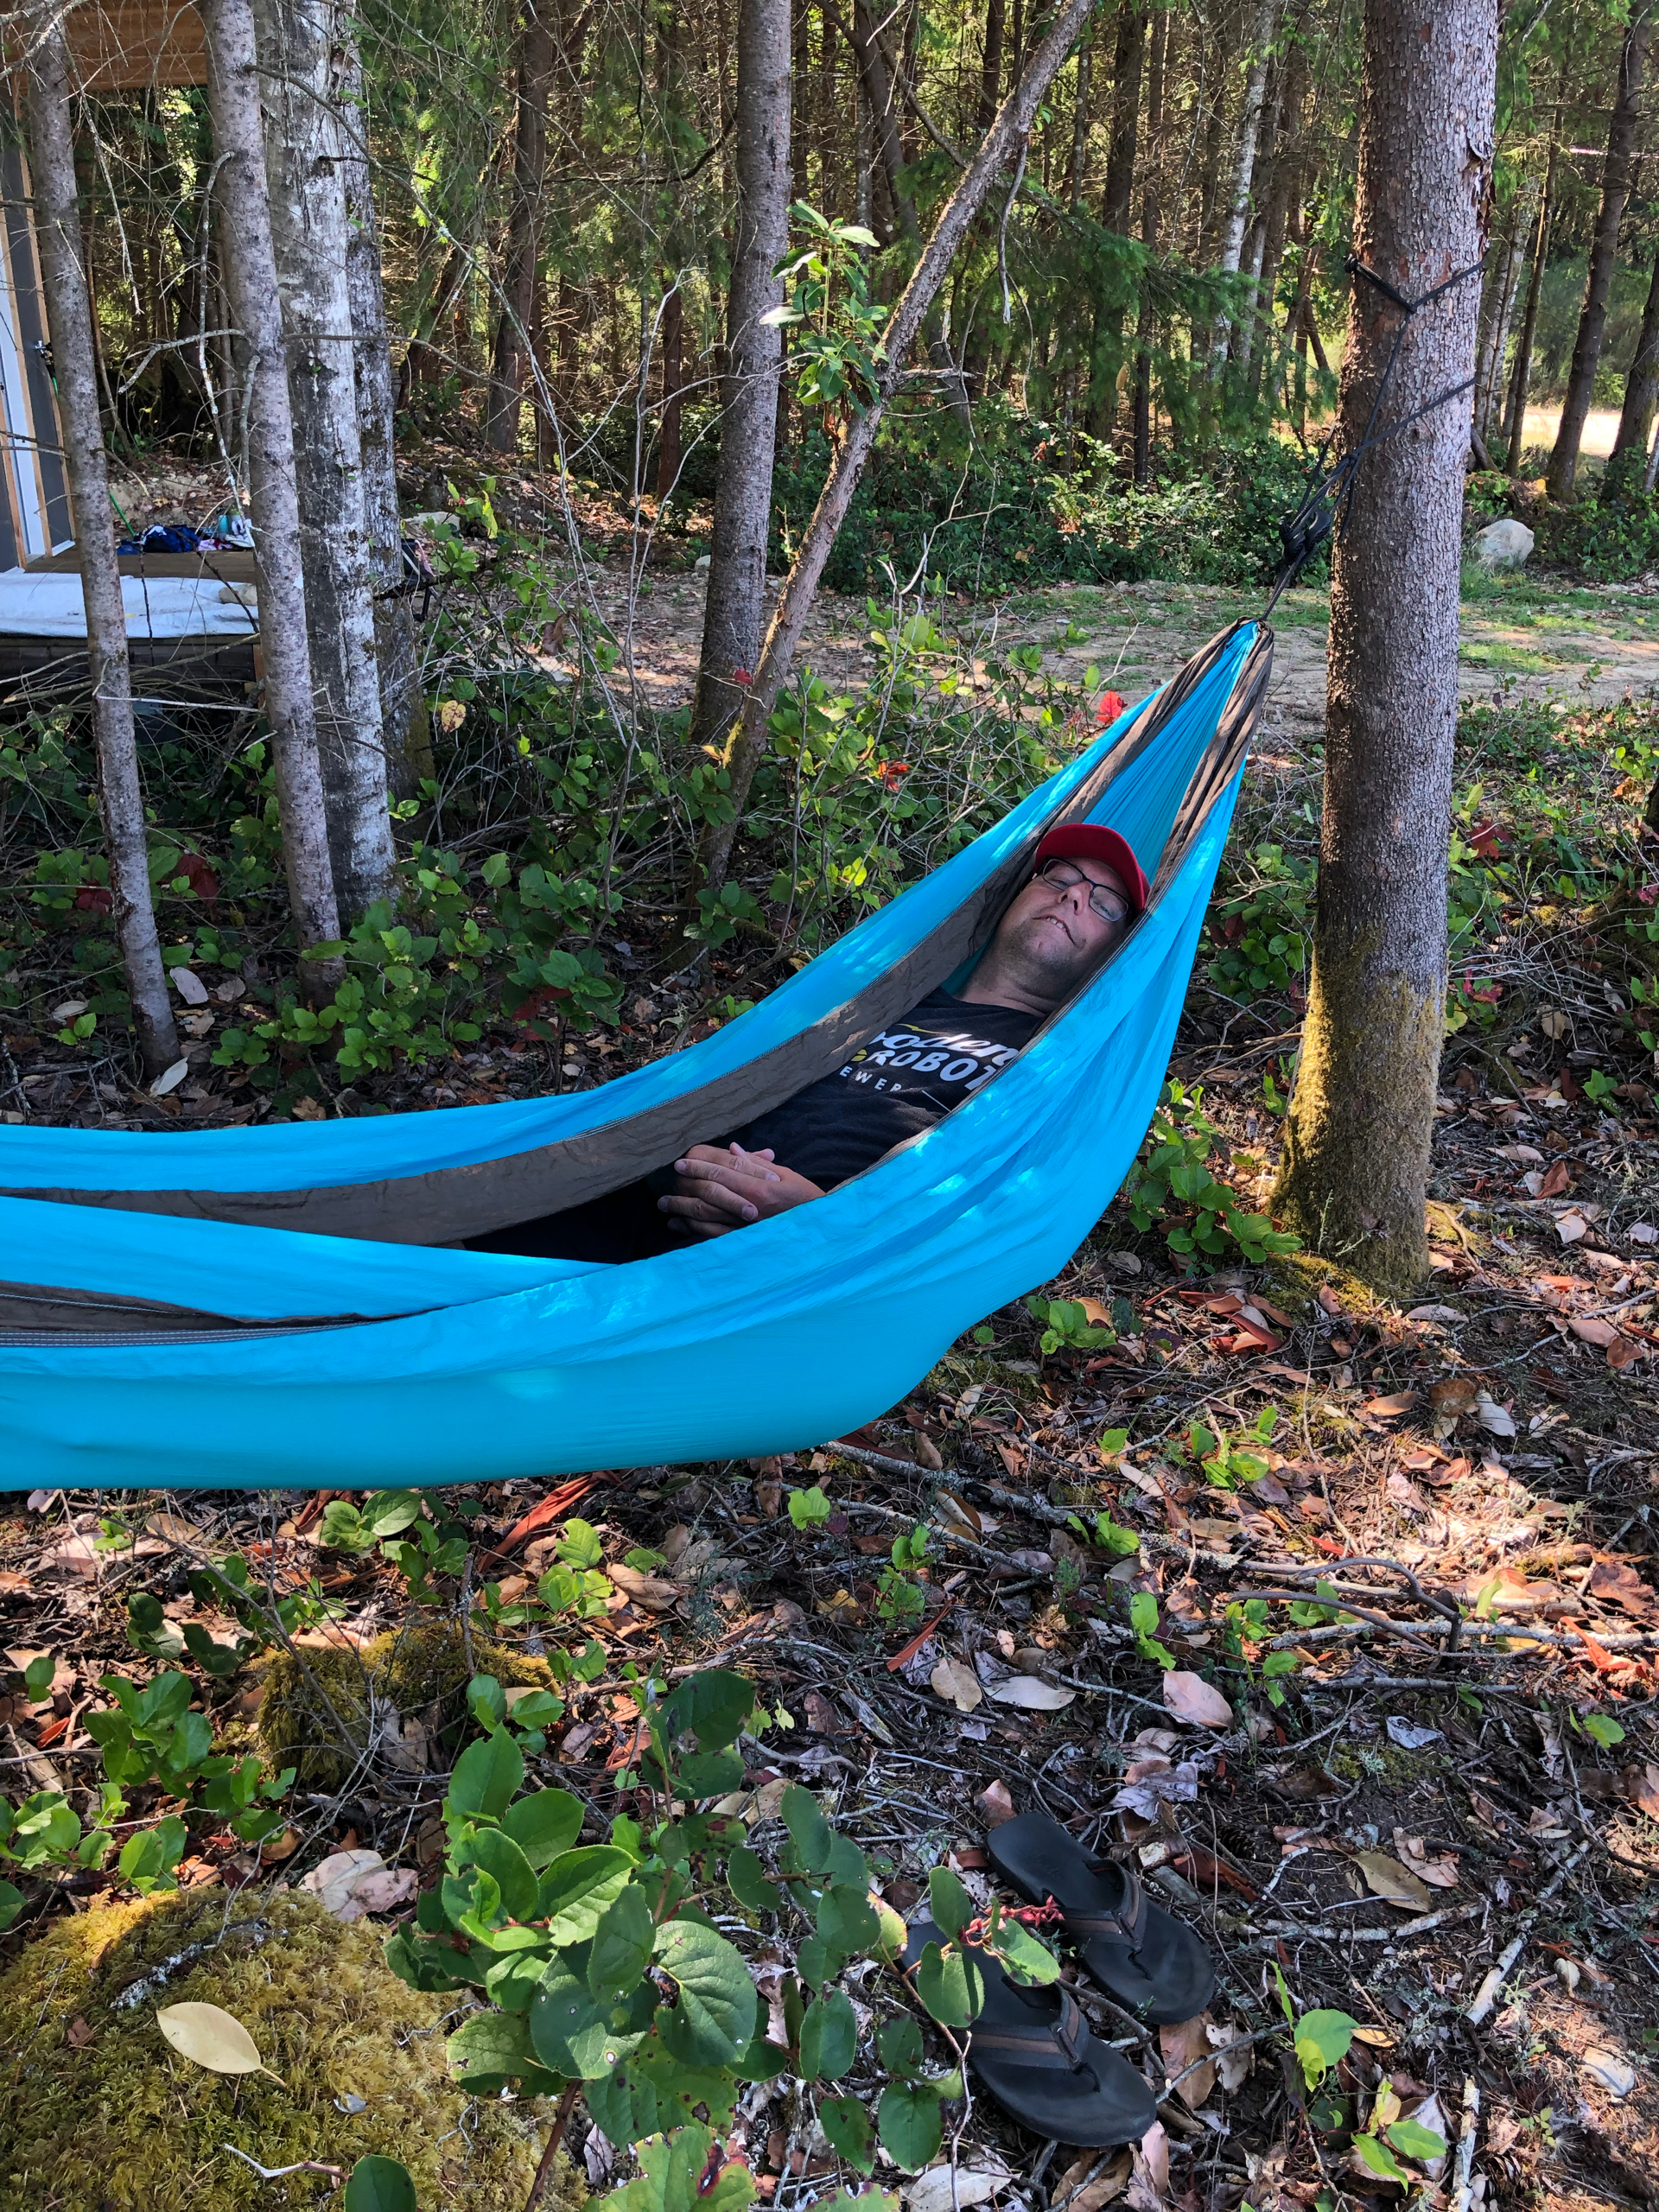 And I may have had a nap in the hammock…